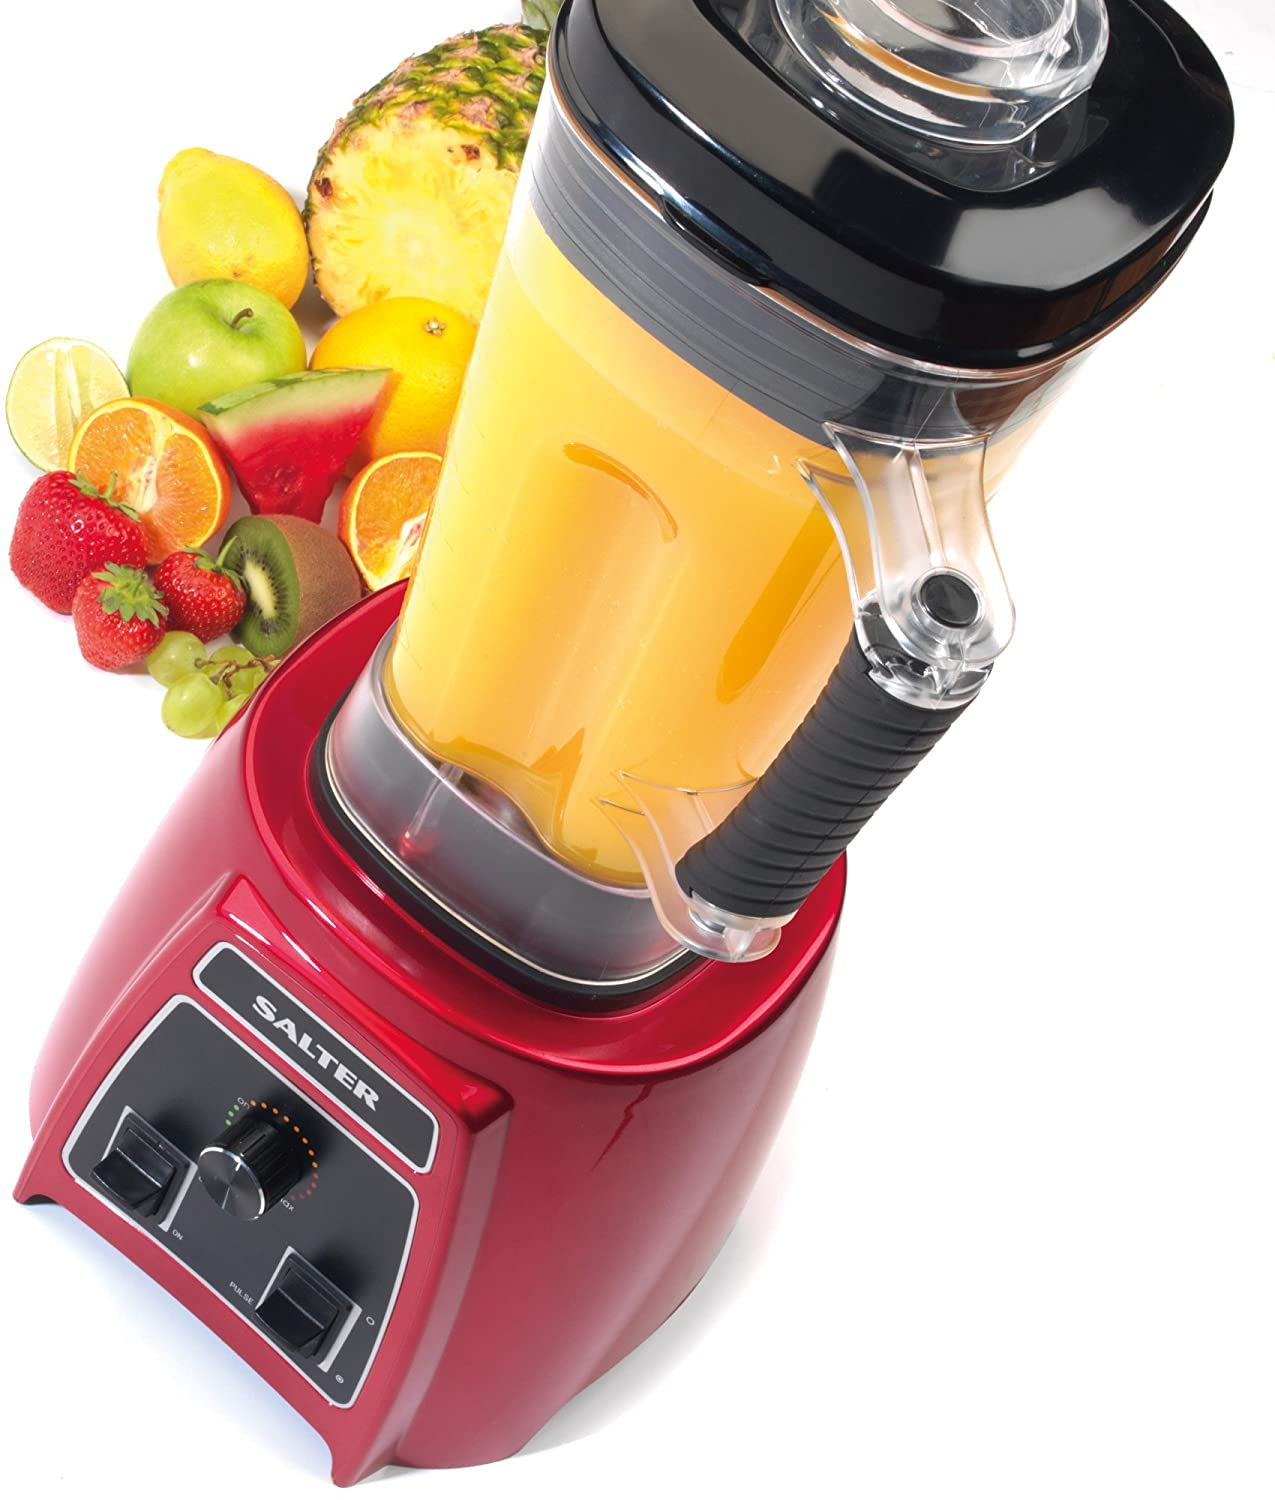 The Salter EK2154 Pro smoothie maker is a bargain.